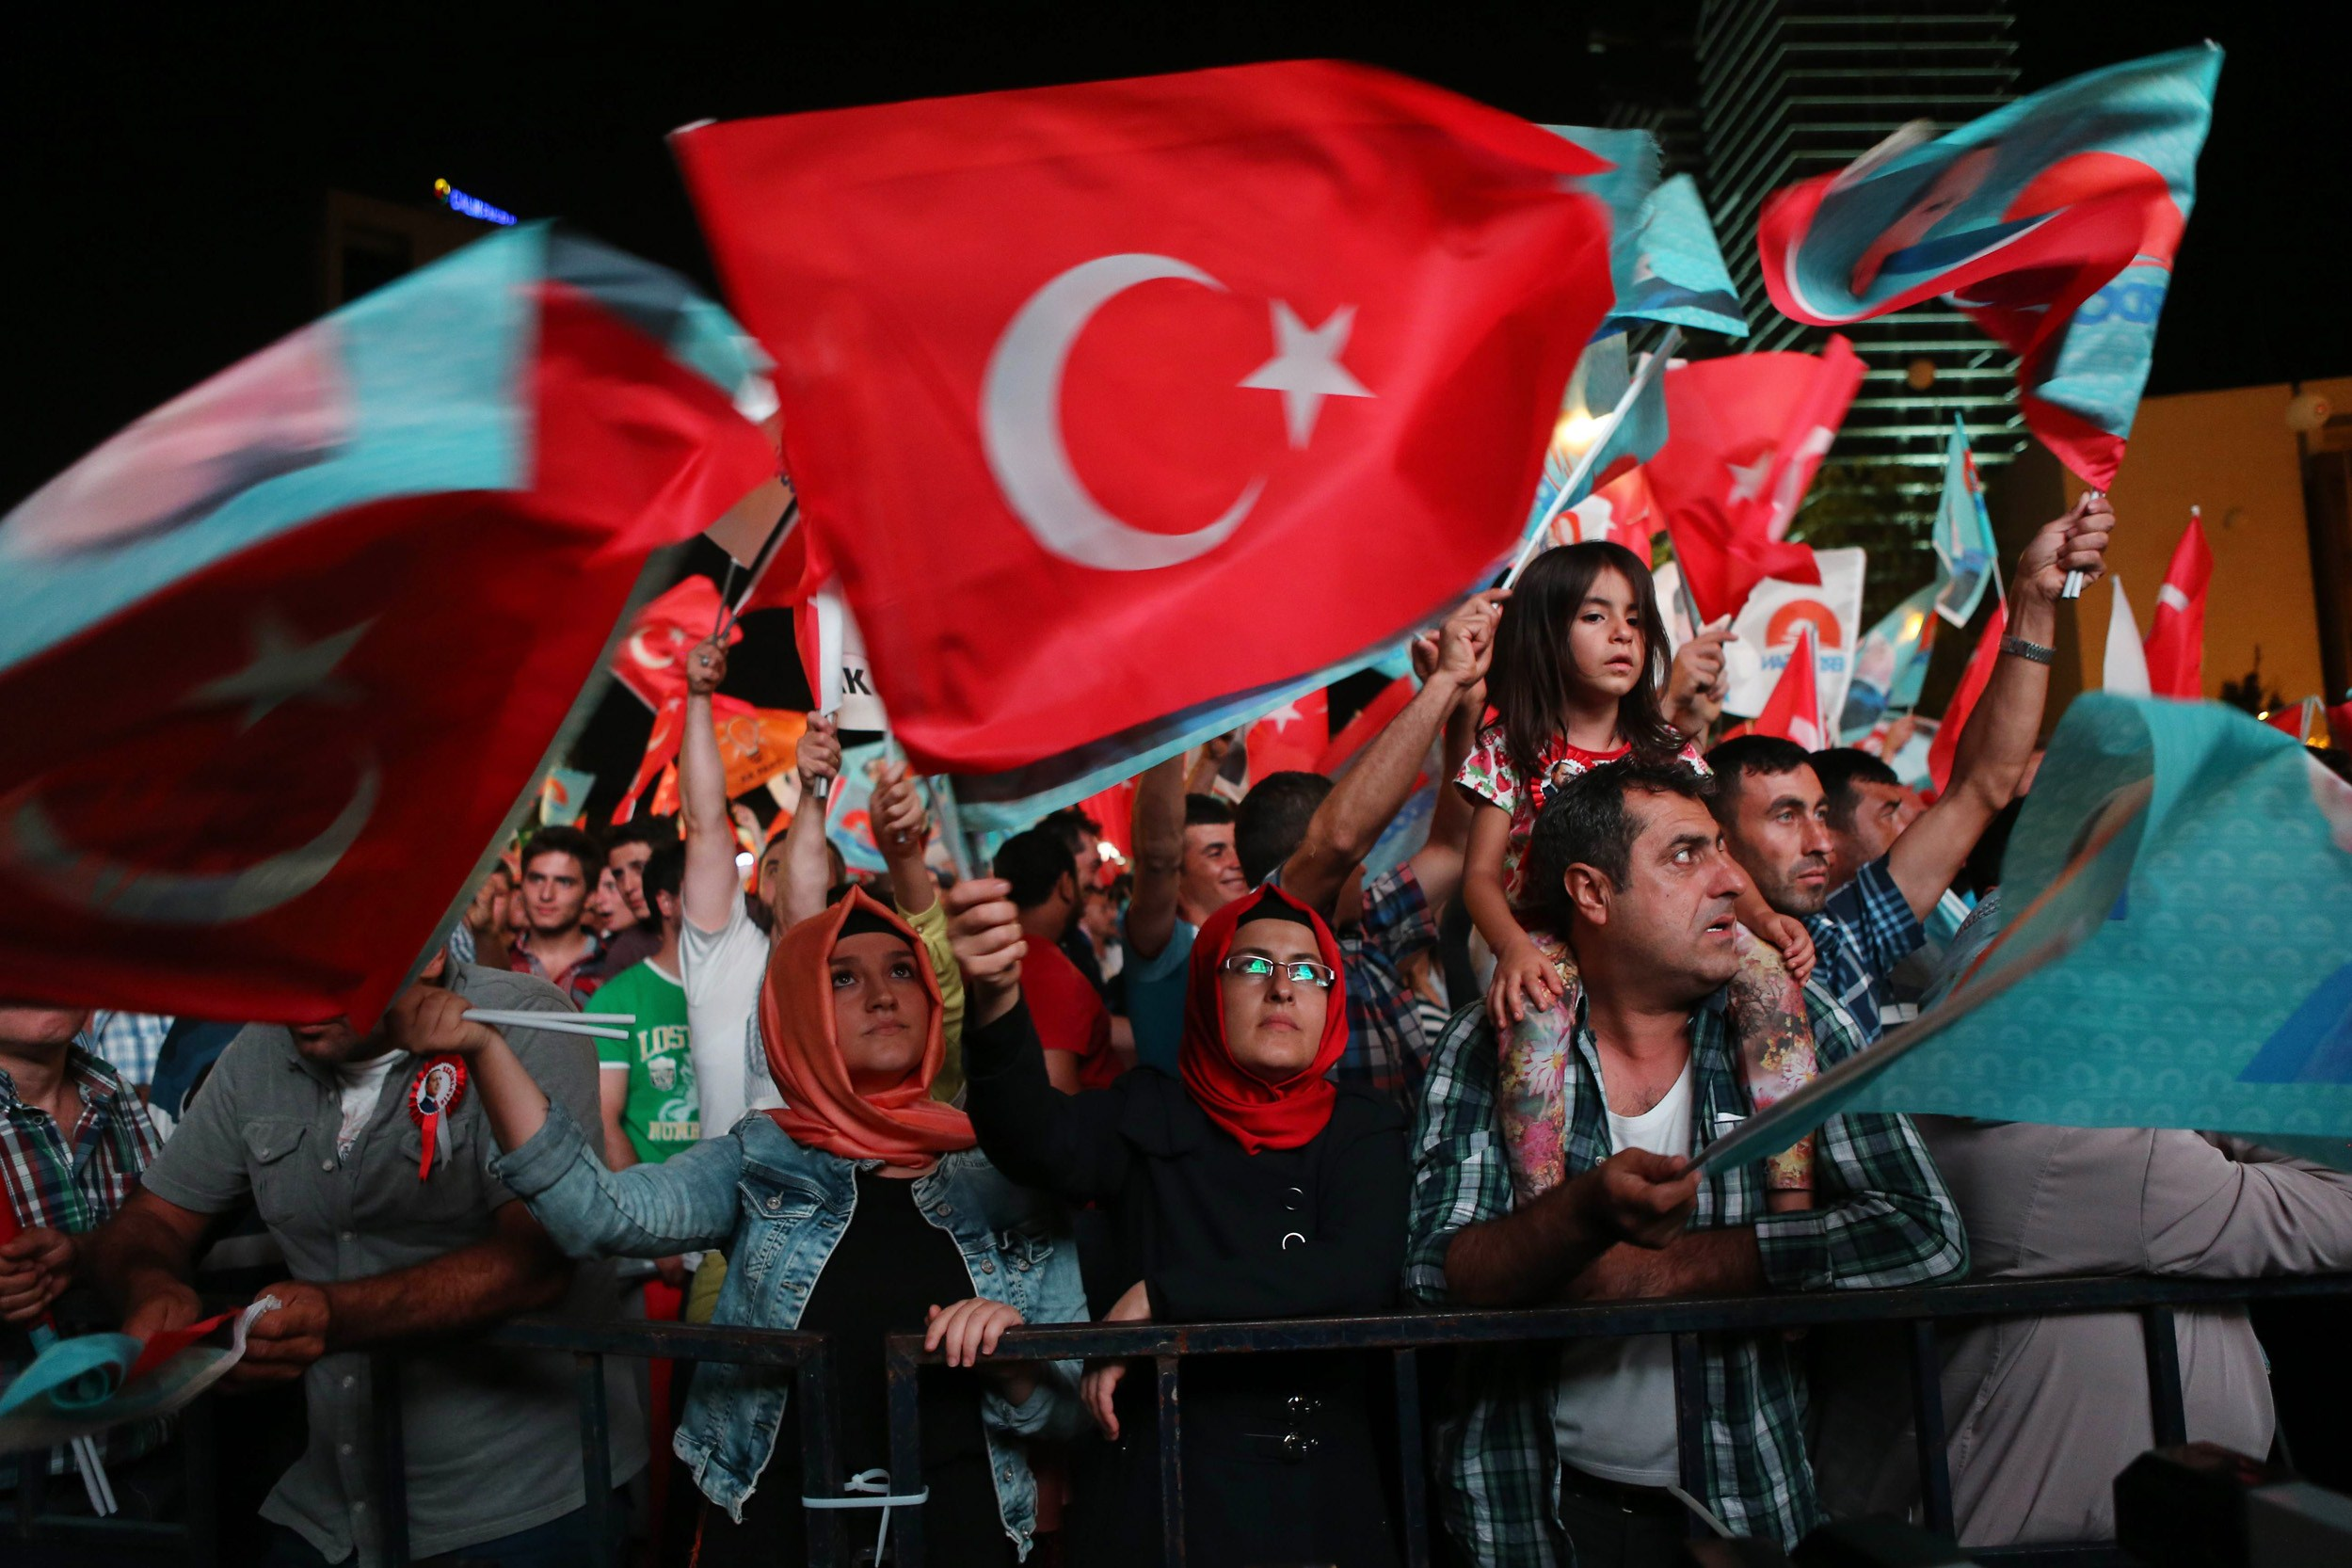 Supporters of Turkey's Prime Minister Recep Tayyip Erdogan celebrate his victory in the presidential election vote in front of the AKP party headquarters in Ankara on August 10, 2014.